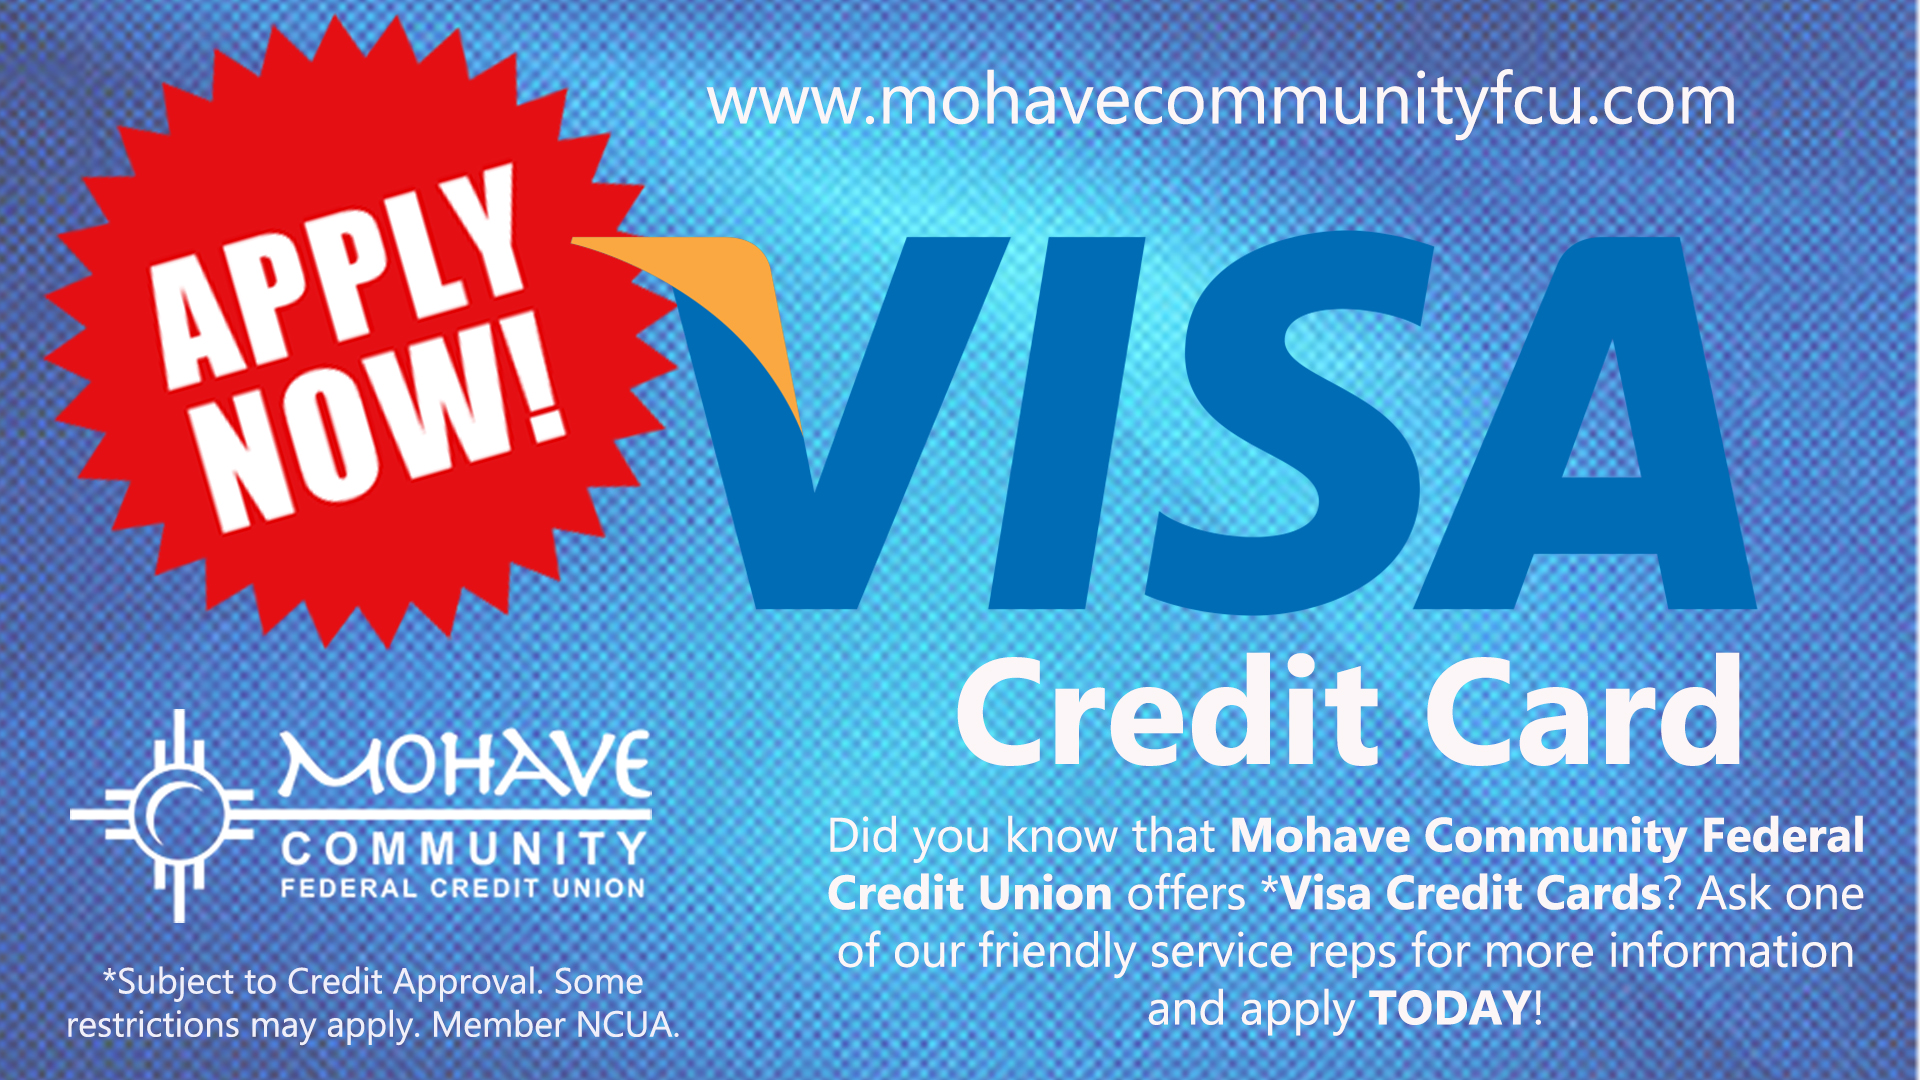 Apply now for our Visa Credit Card! Contact MCFCU at 928-753-8000 for more information!